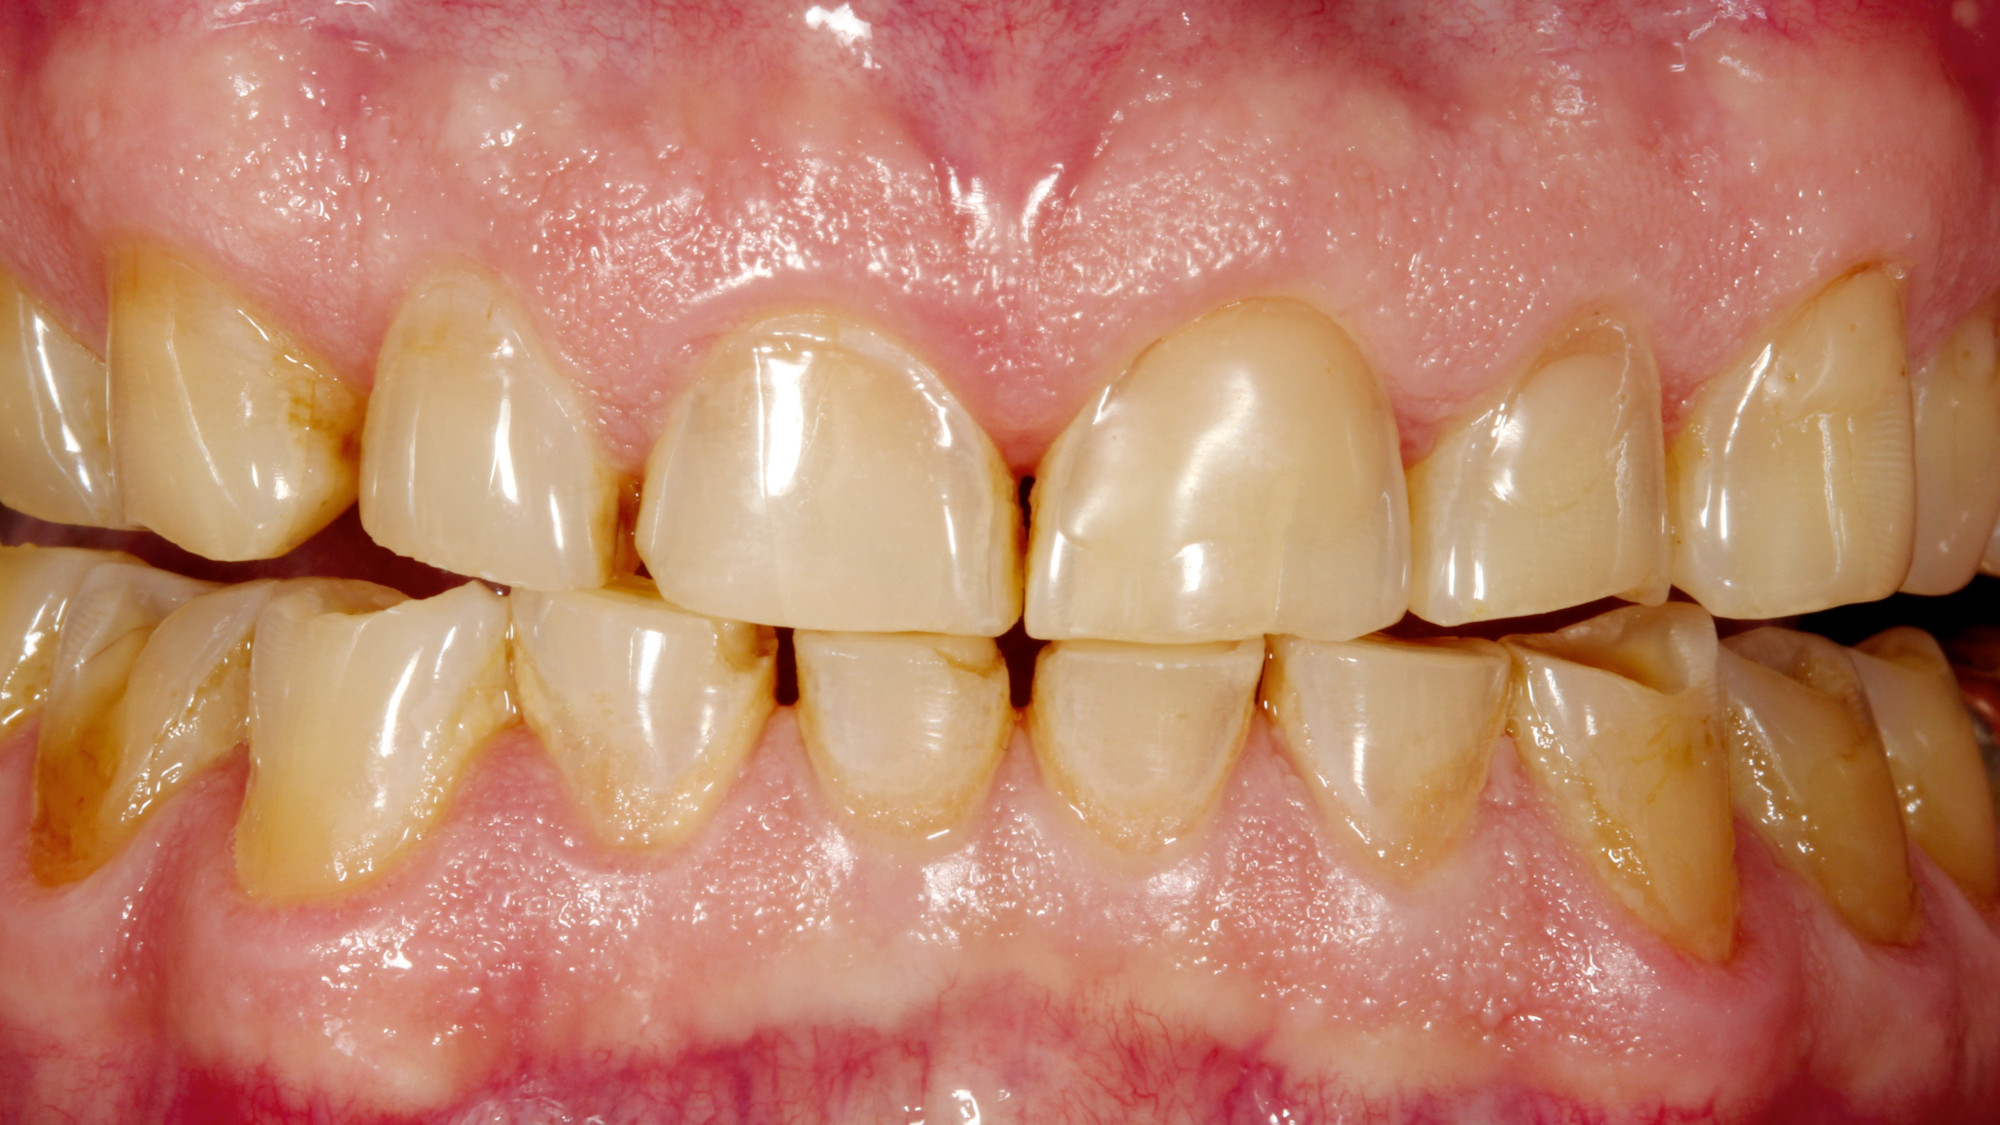 Full-mouth restoration with ZolidFX— a successful concept for sophisticated prostheses